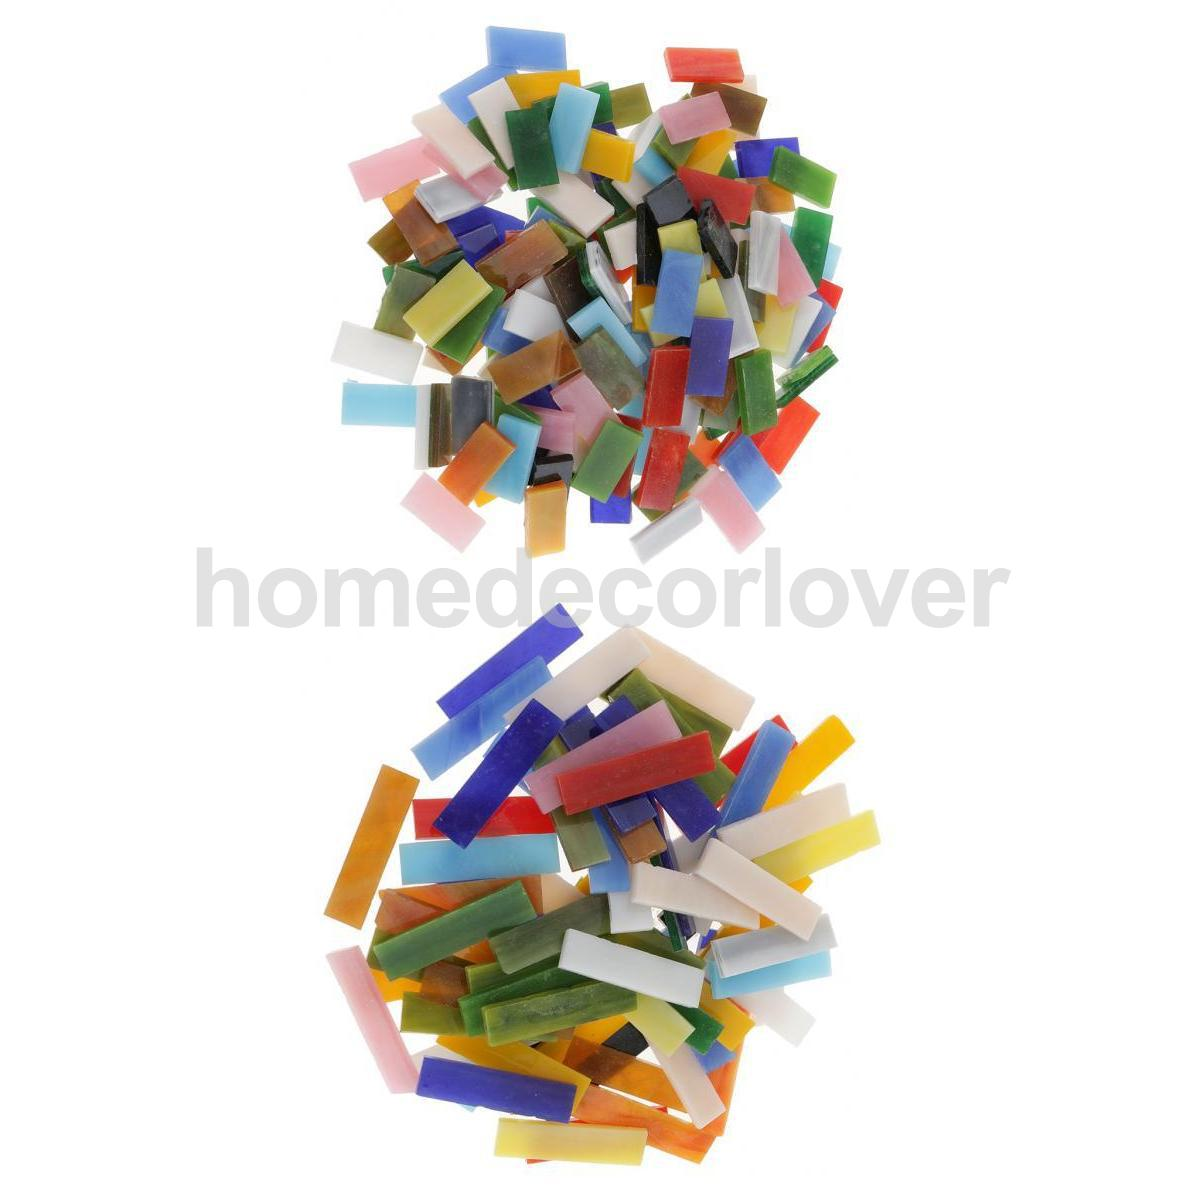 50-500g Mixed Color Glass Crystal Mosaic Tiles DIY Craft School Mosaic Making US